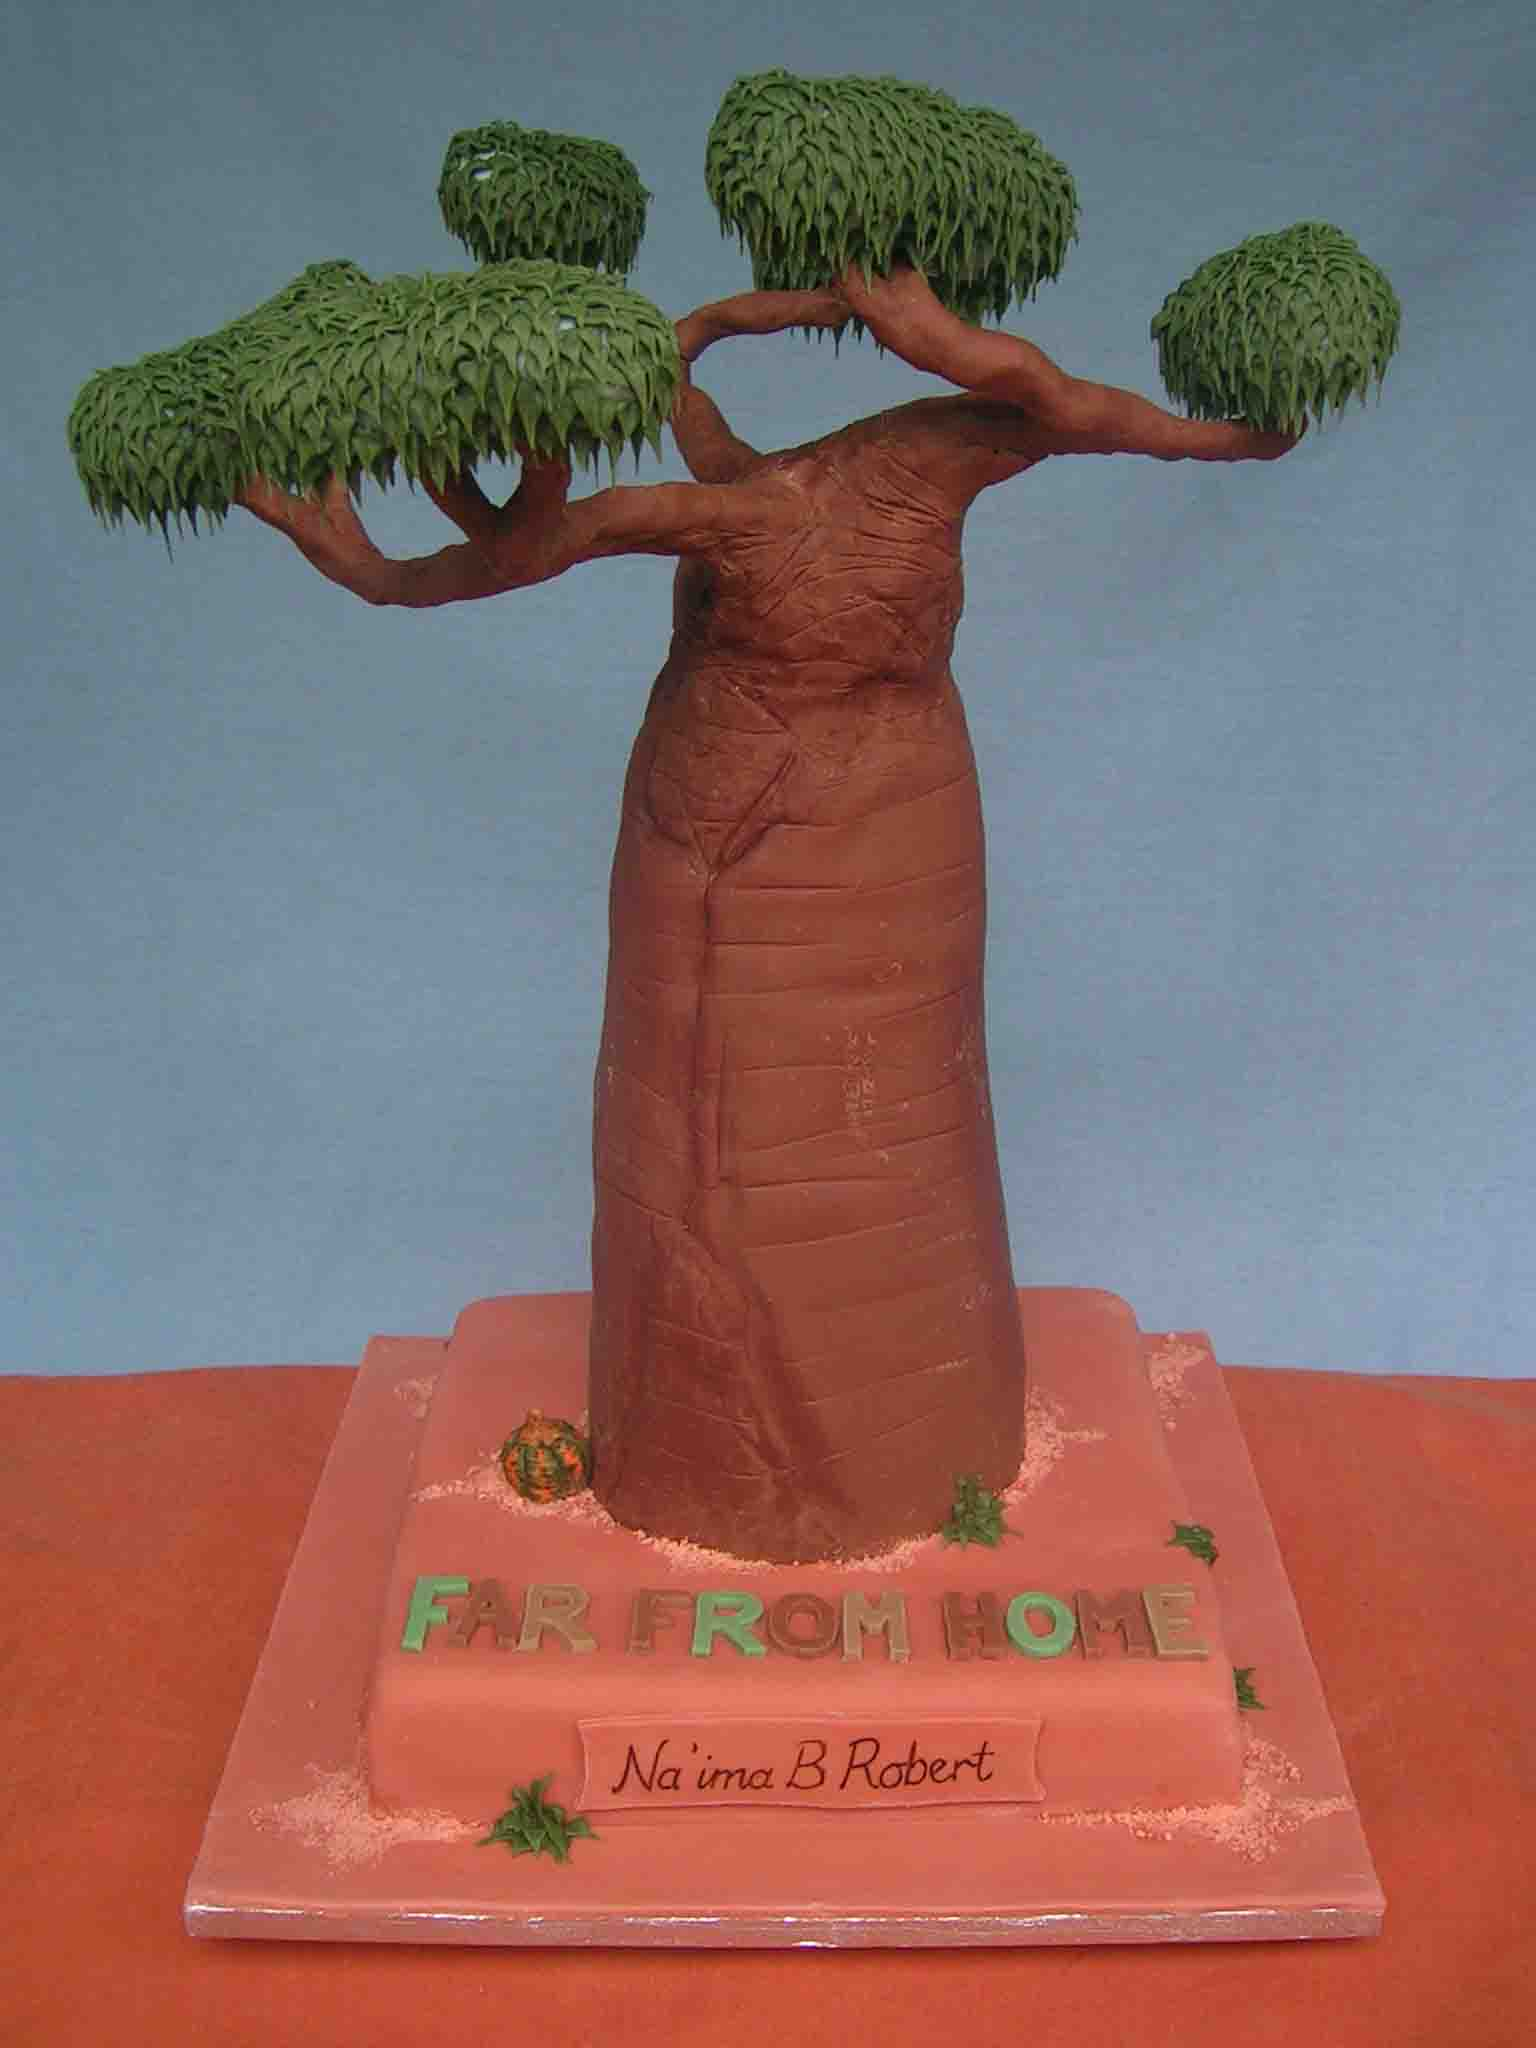 http://www.barmycakes.co.uk/resources/baobab1.jpg